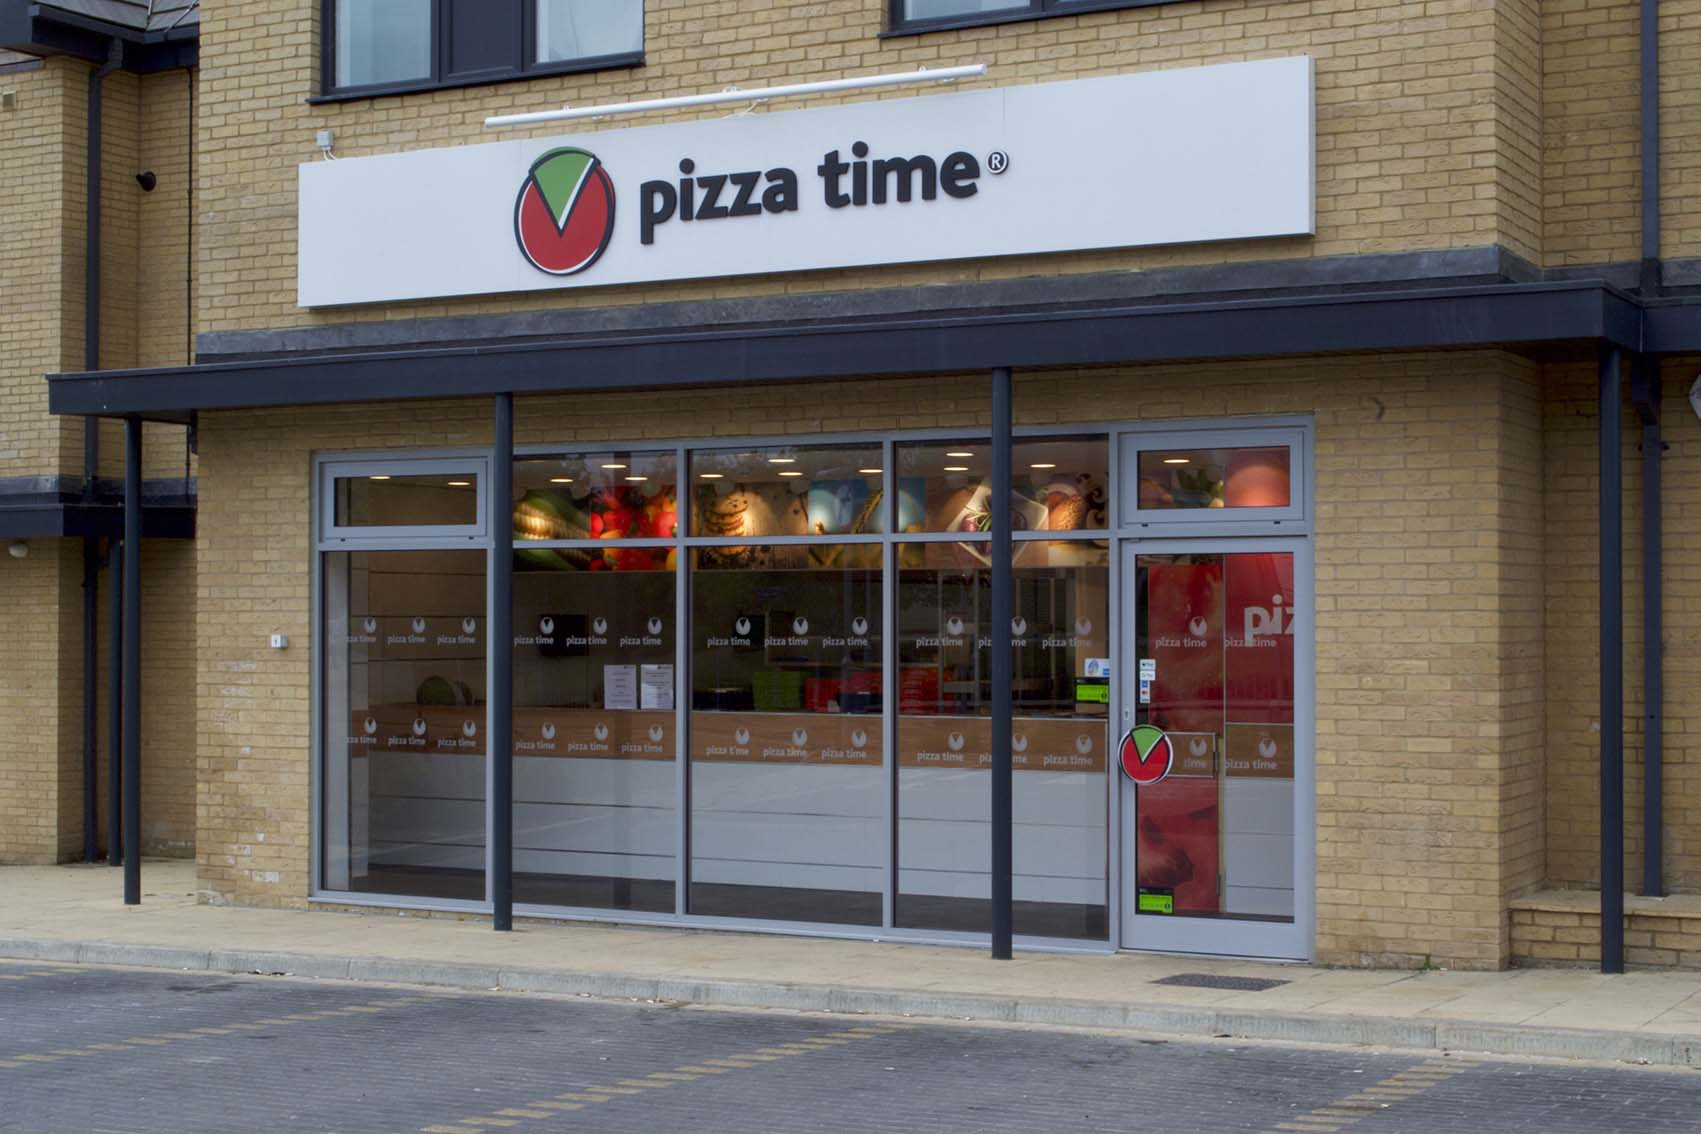 Pizza, Serving up a winning new recipe for Pizza Time UK, Tangent